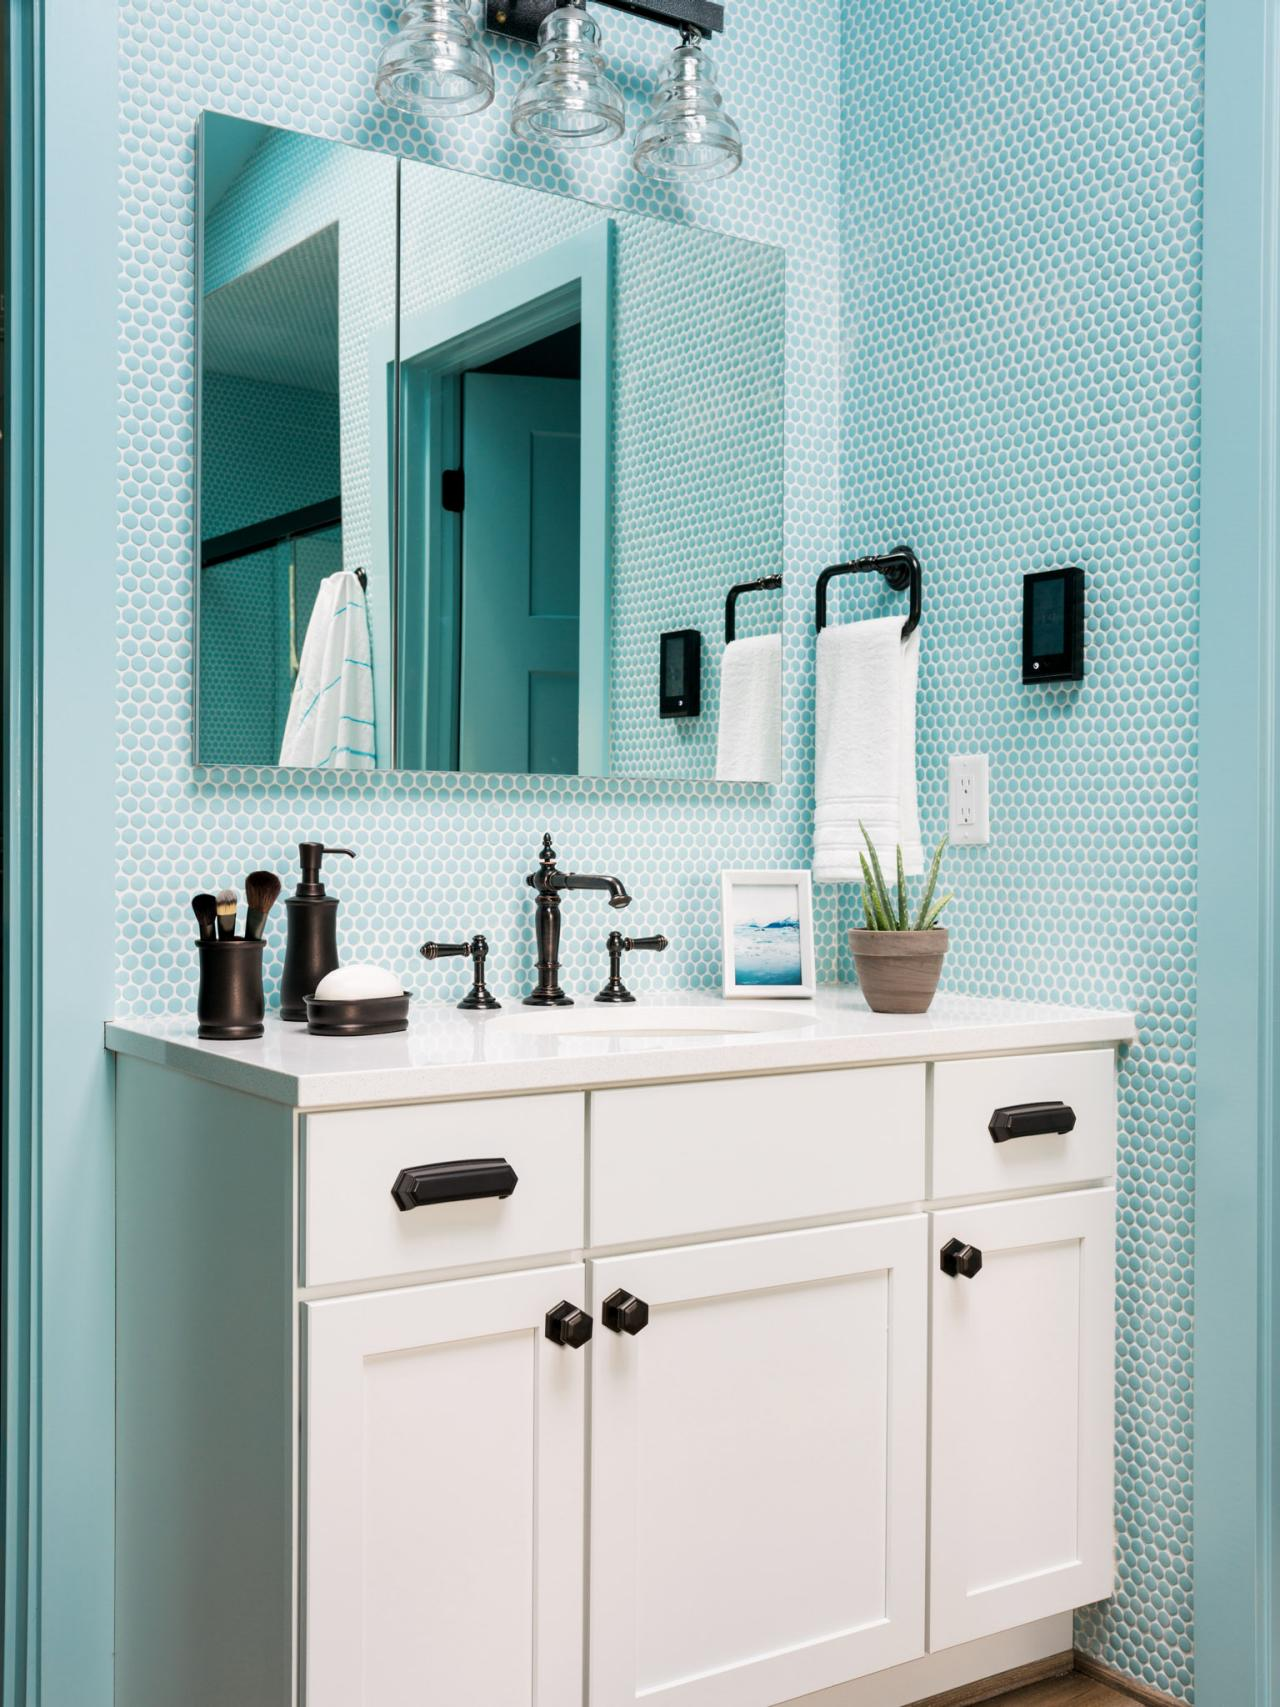 Which Master Bathroom is Your Favorite? | HGTV Urban Oasis ...